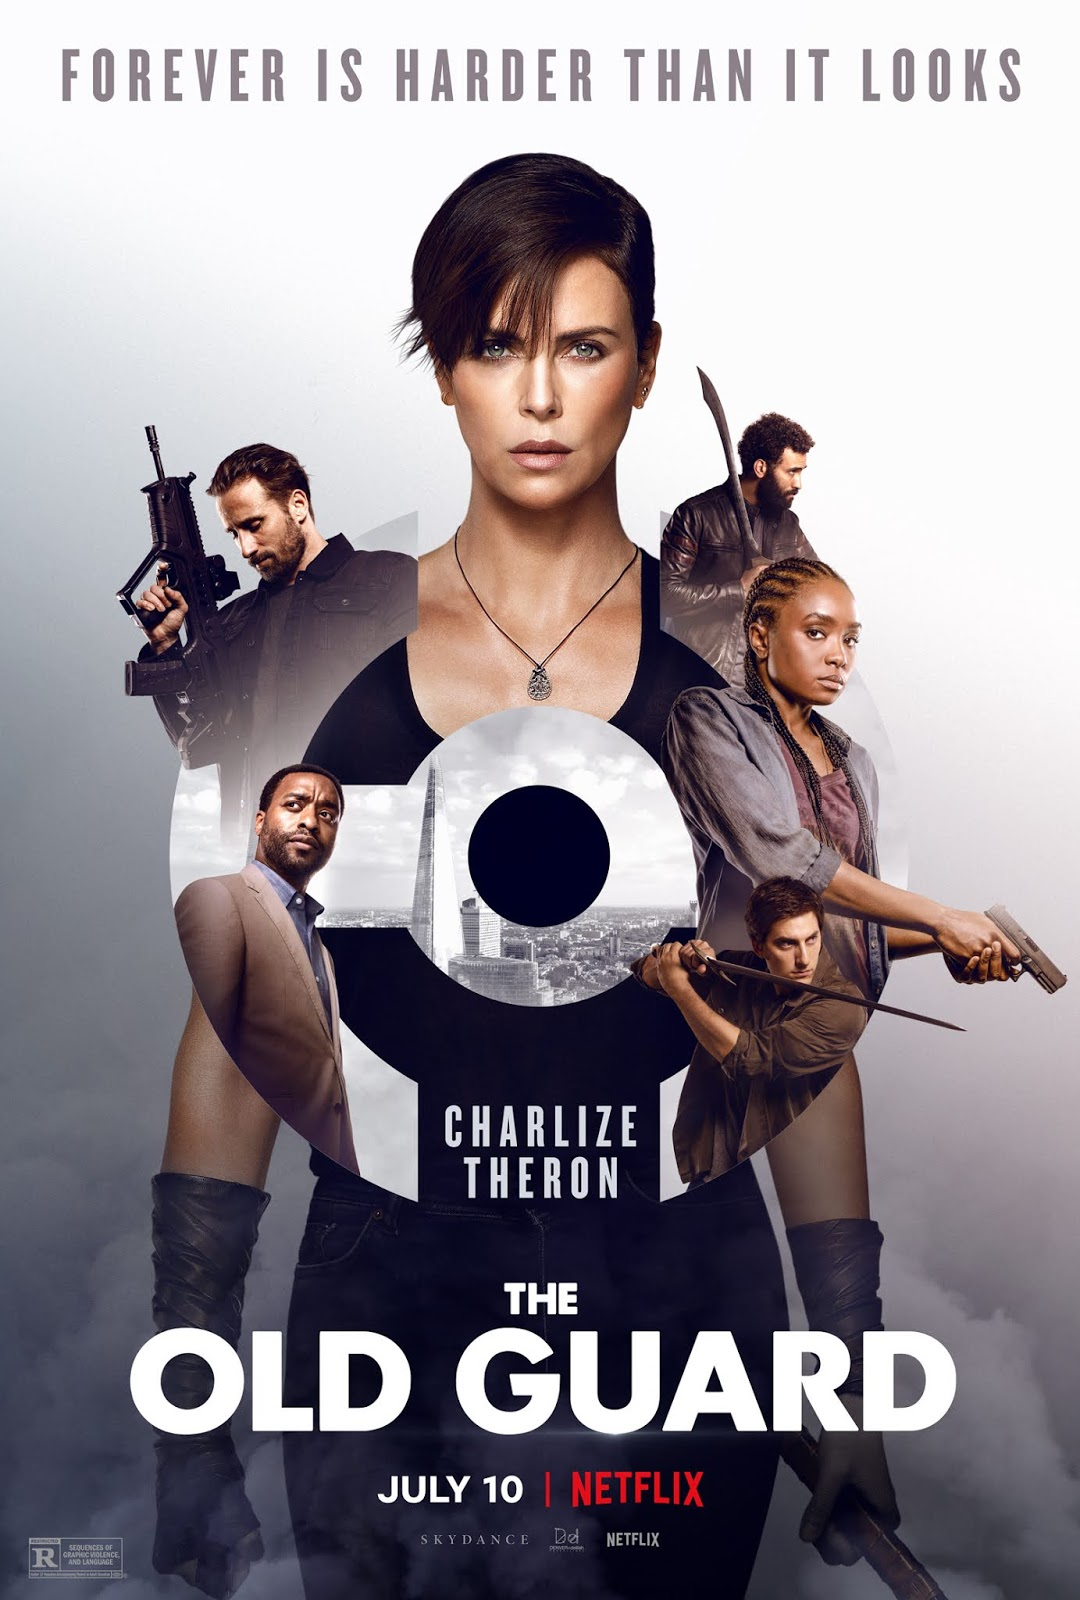 the old guard film netflix recenzja charlize theron greg rucka